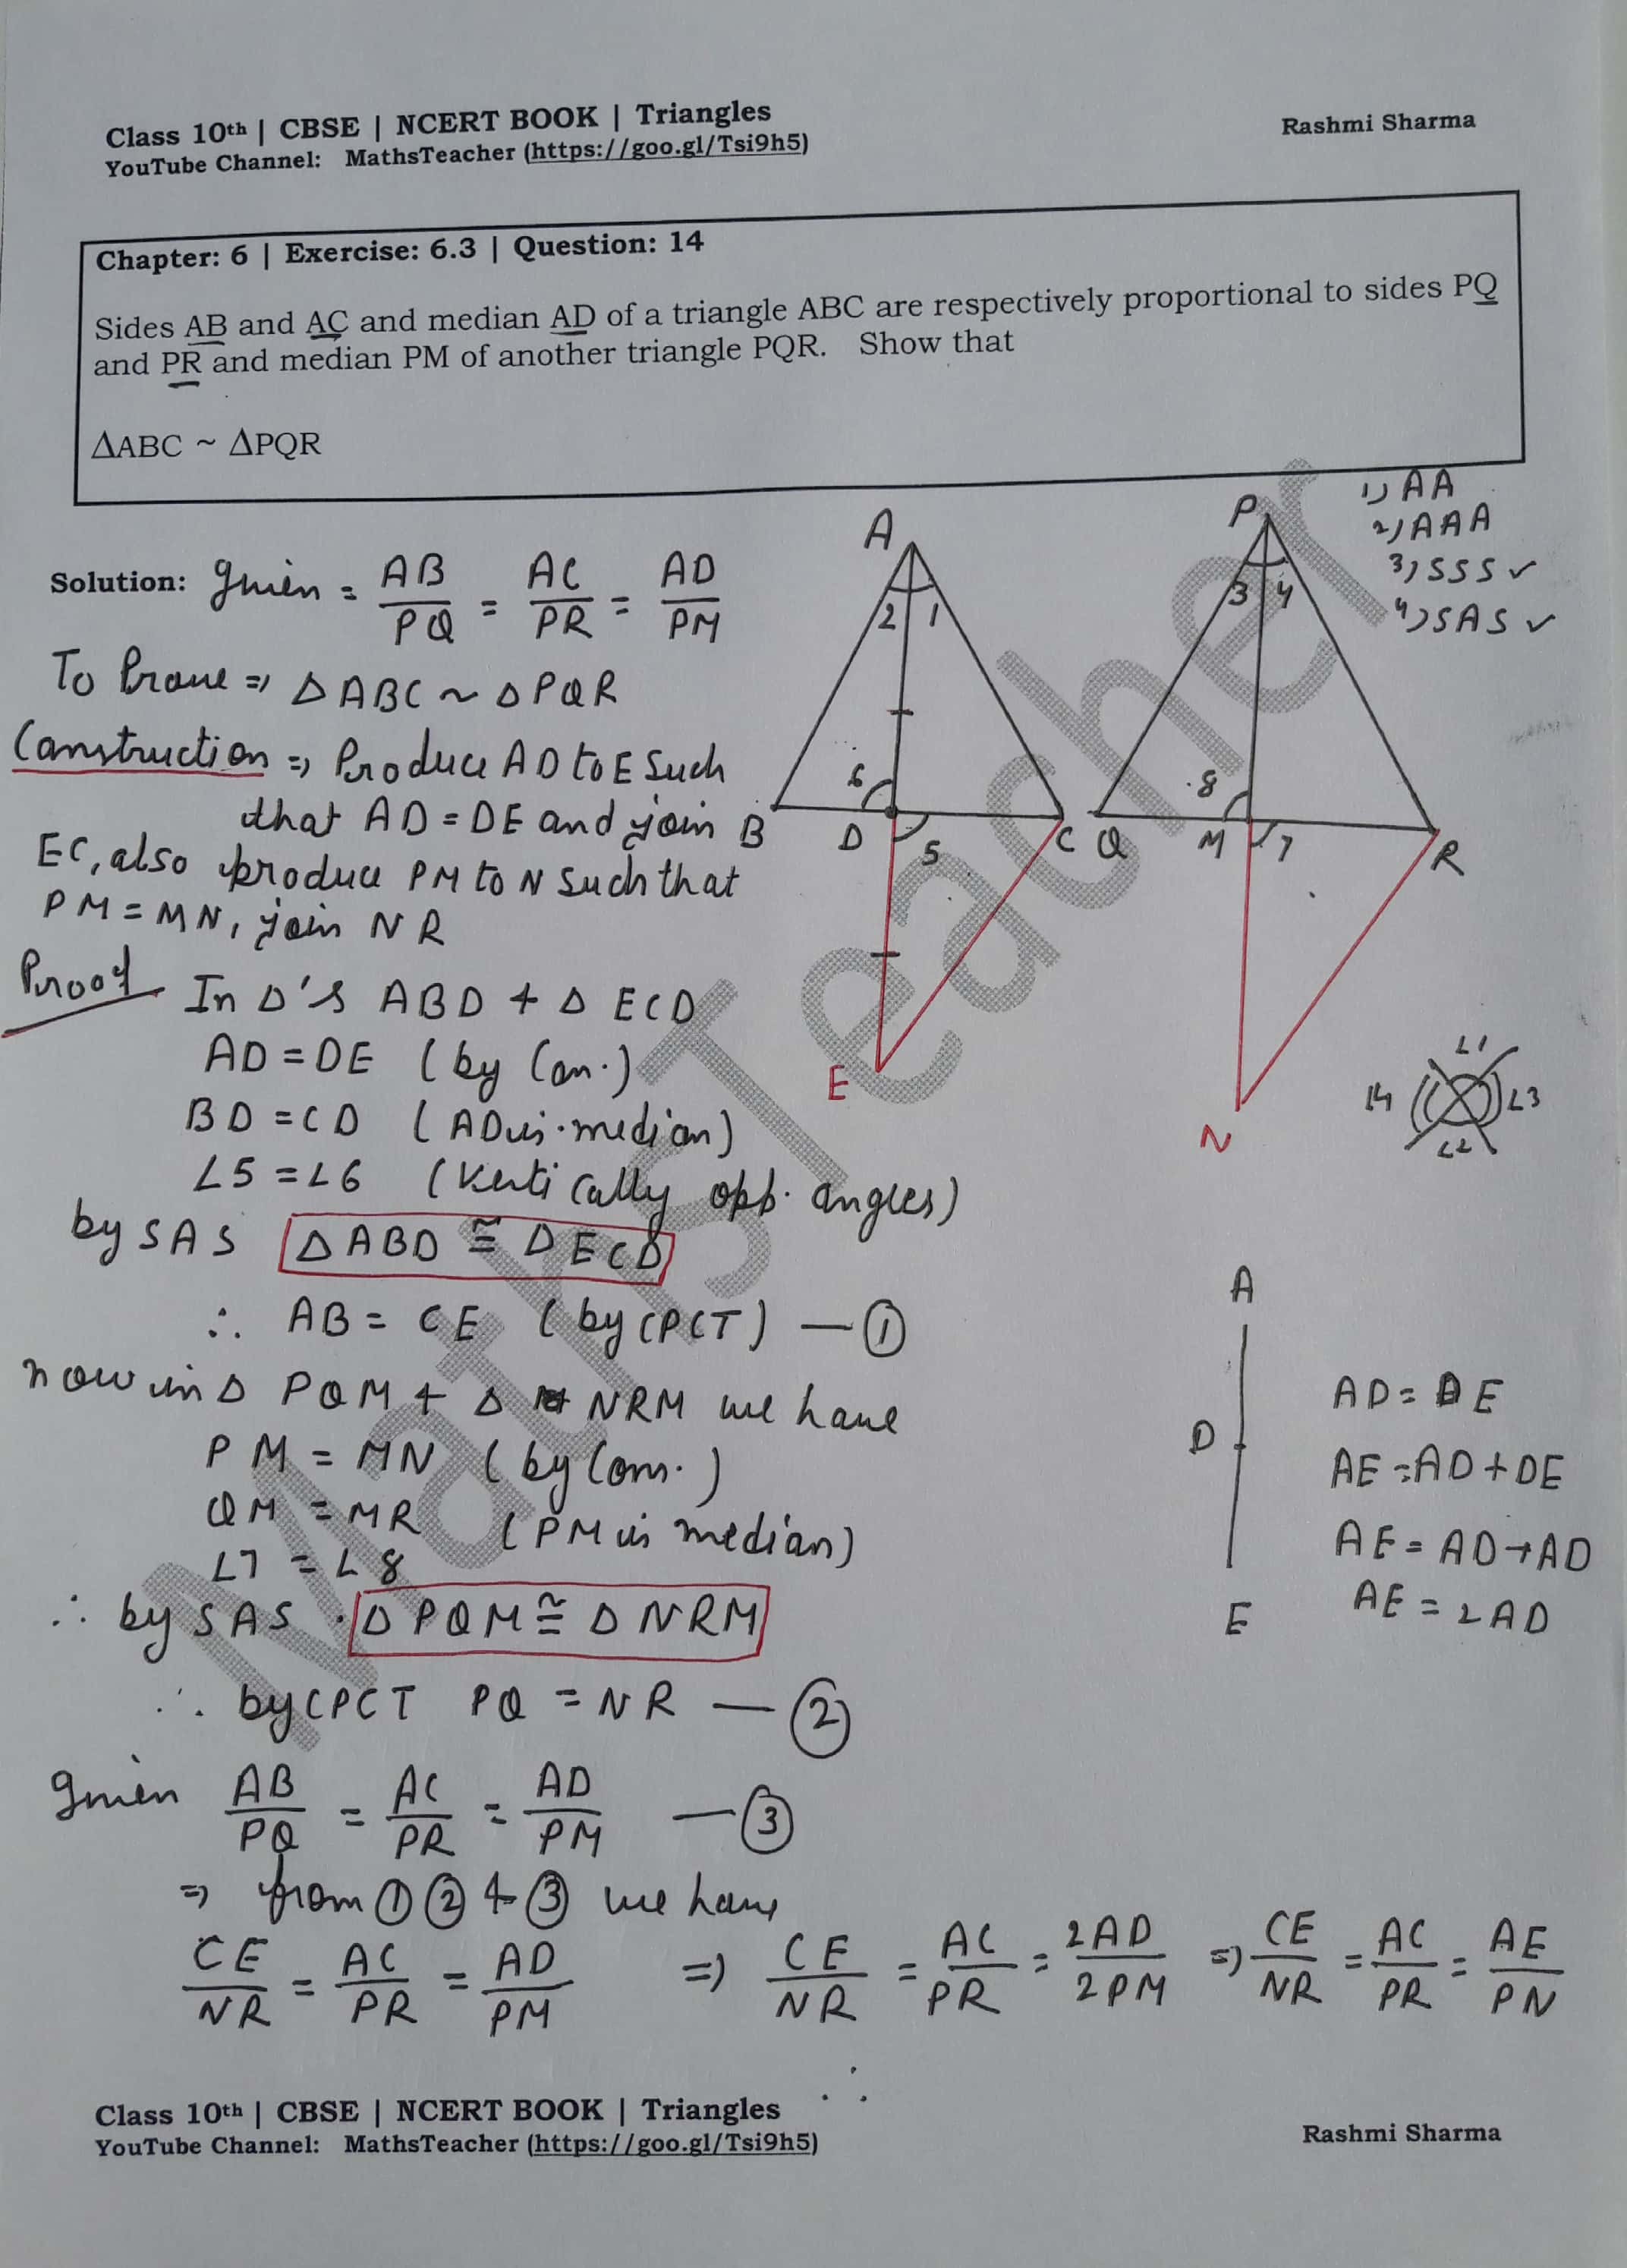 Triangles : Exercise – 6 3 question 14 (Mathematics NCERT